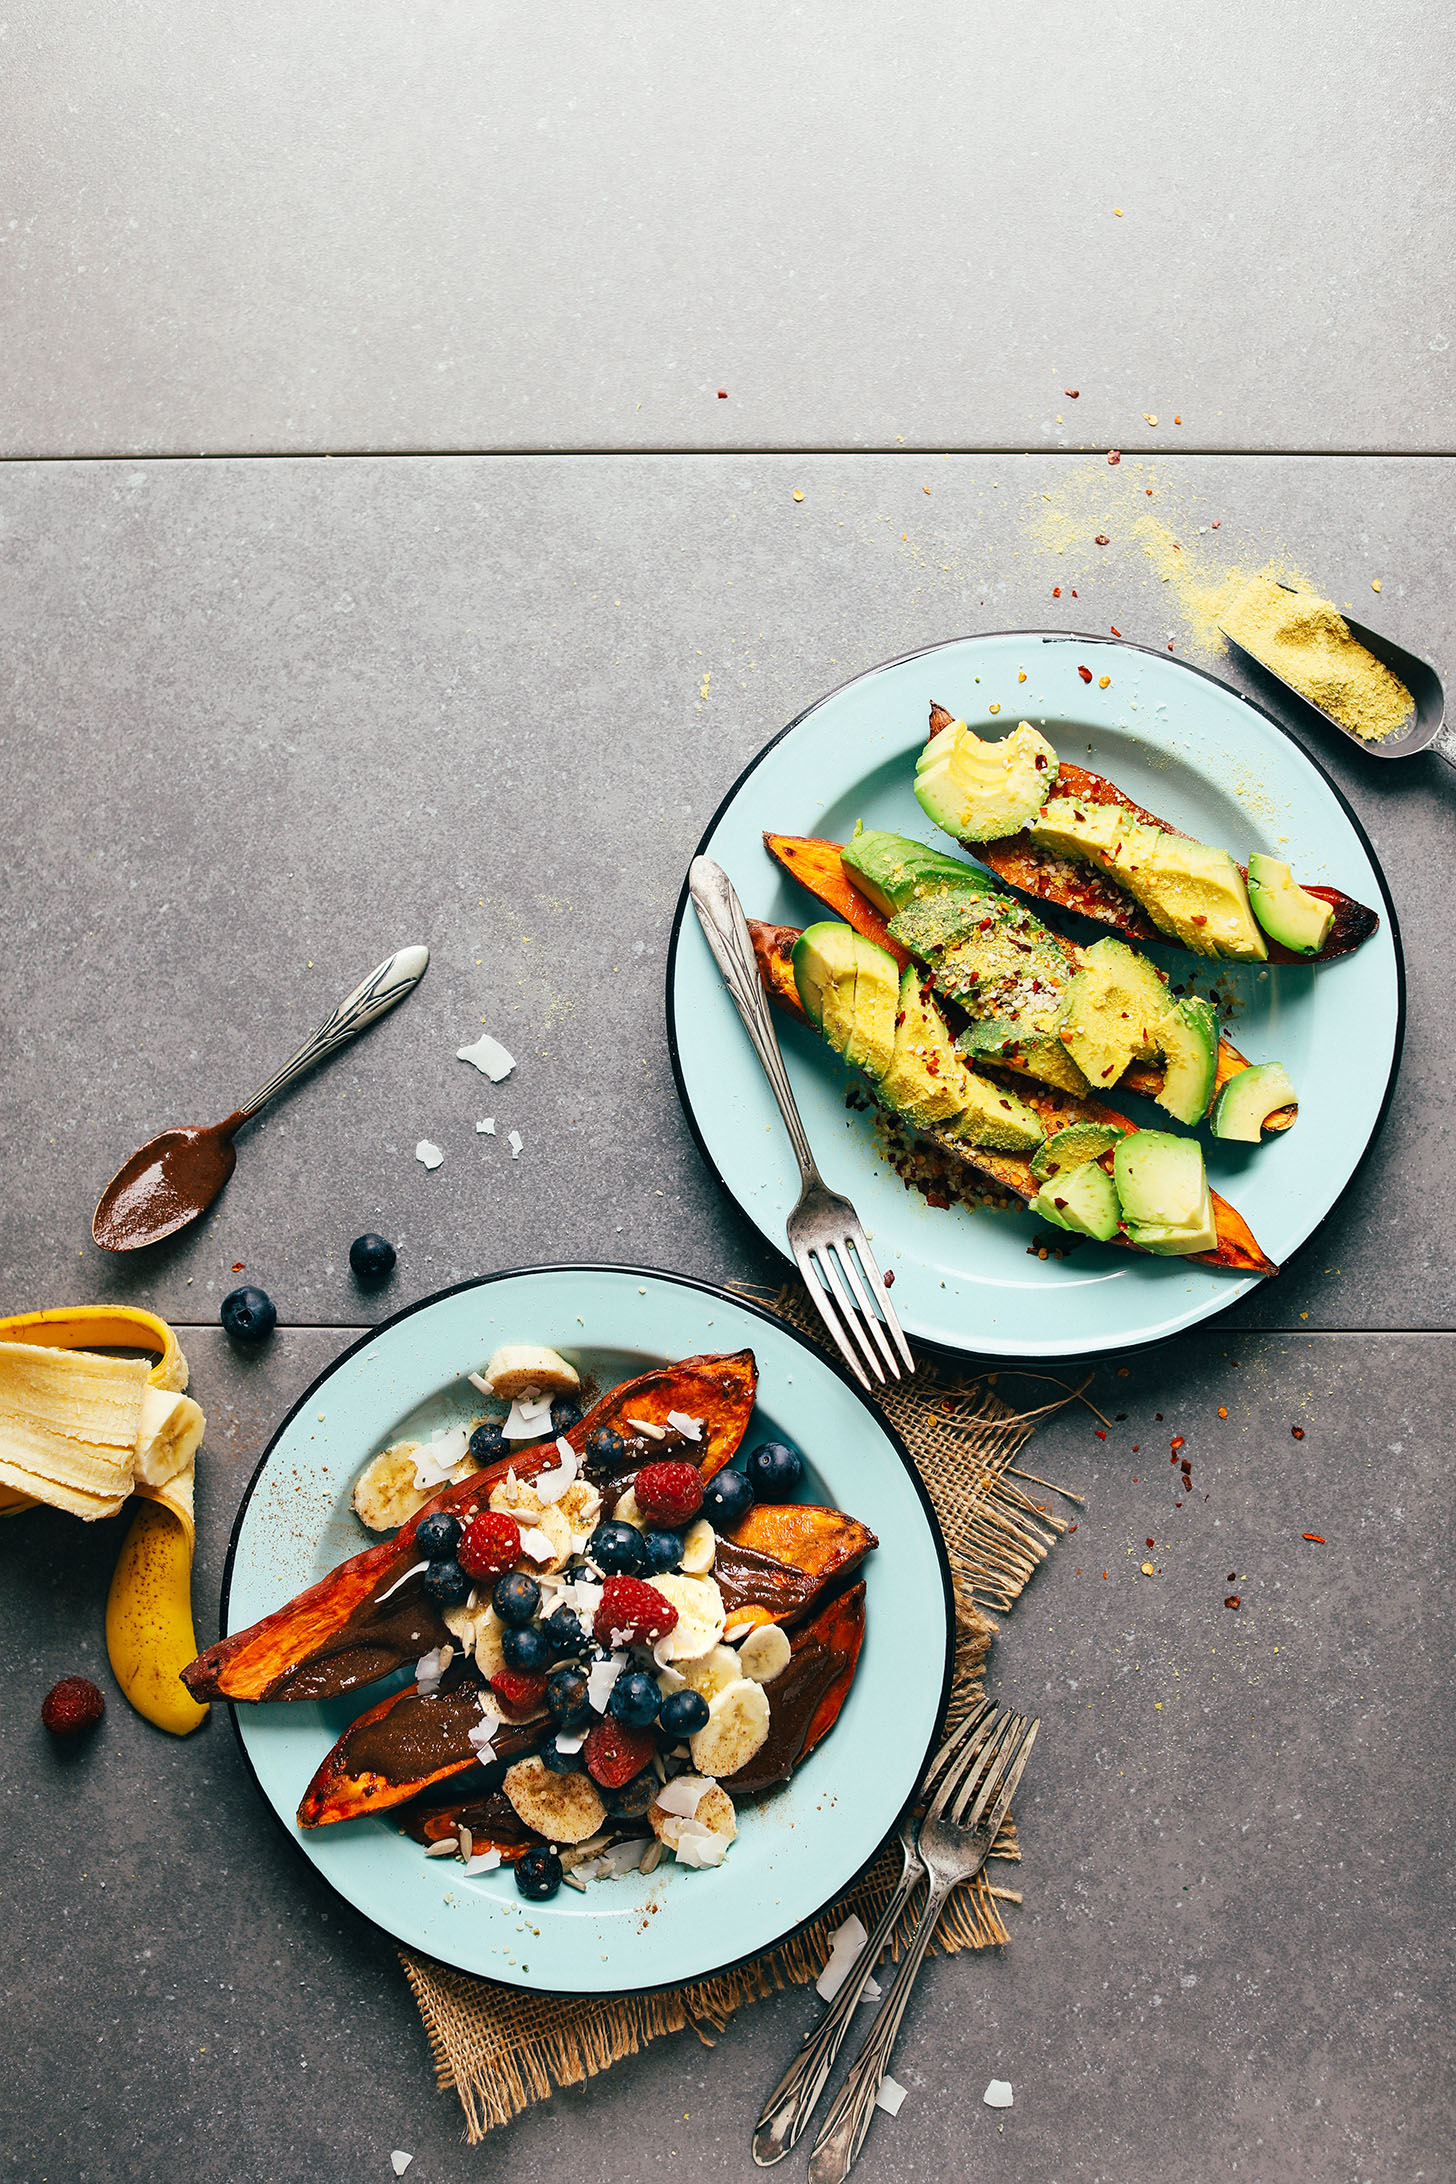 A savory plate of baked sweet potato with avocado, chili flakes, nutritional yeast, and salt and a sweet plate of baked sweet potato with fresh fruit, chocolate, and coconut